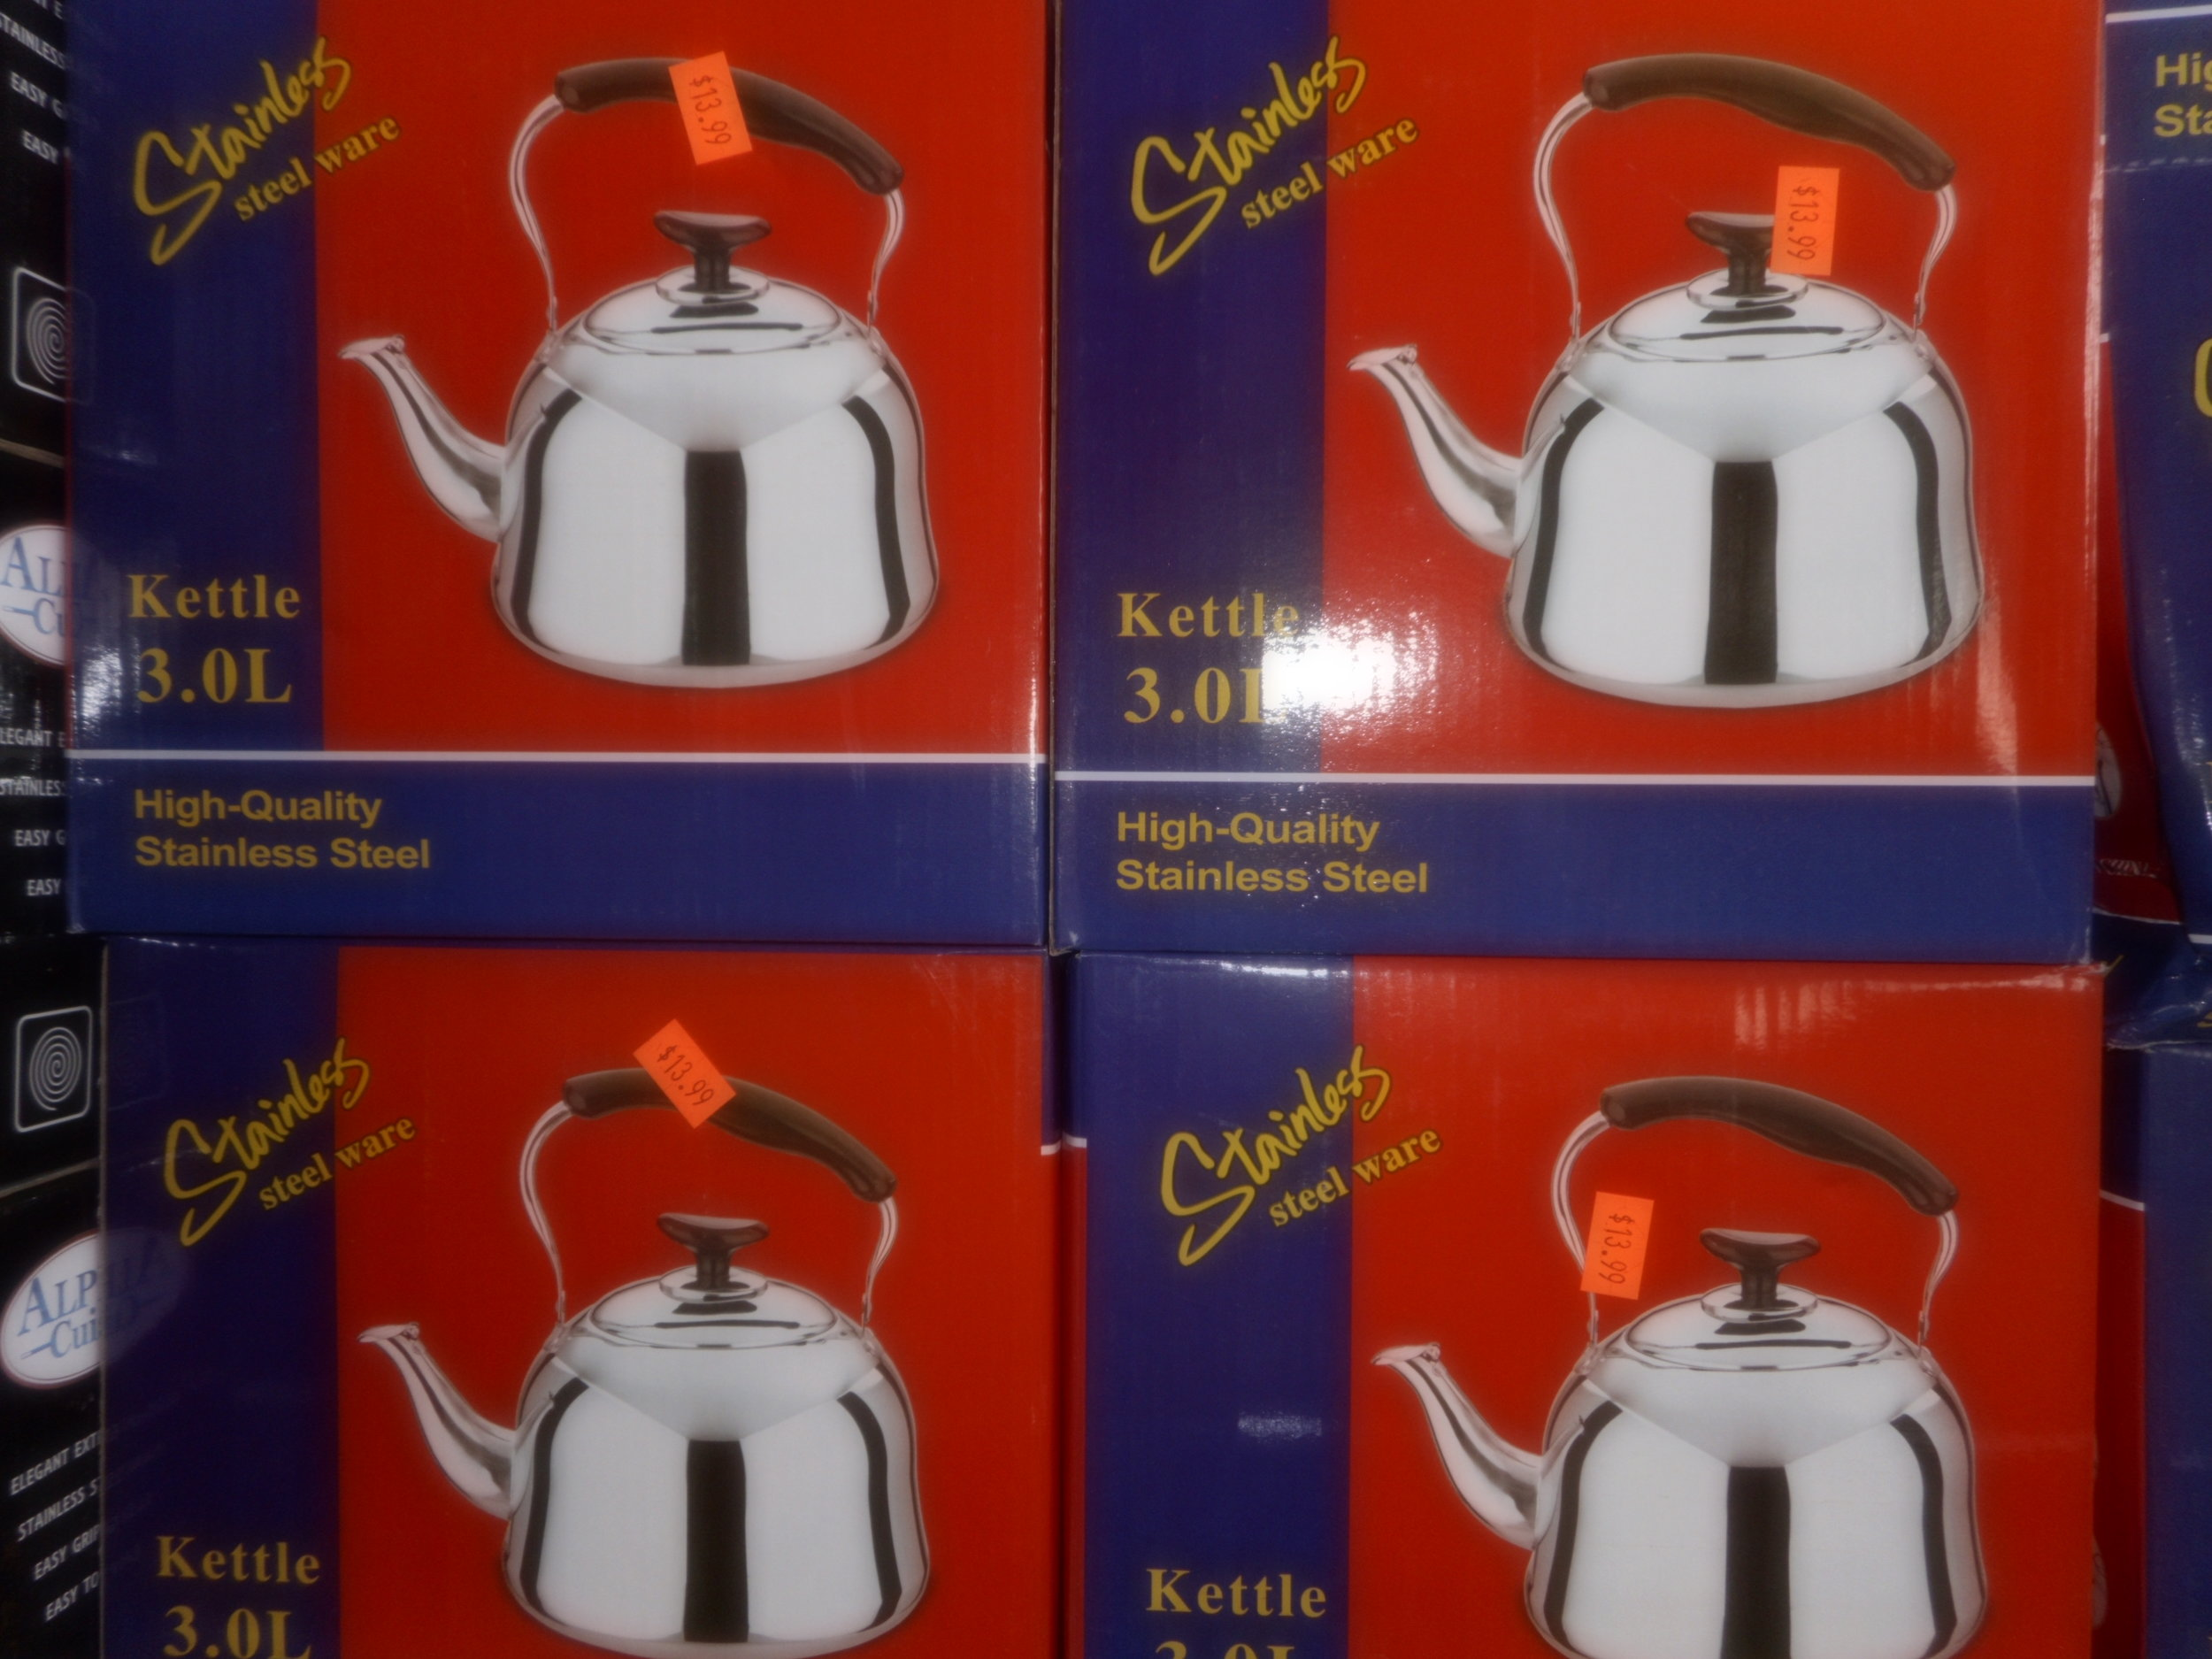 Stainless-Steel-Tea-Kettle-Pak-Halal-Mediterranean- Grocery-Store-12259-W-87th-St-Pkwy-Lenexa-KS-66215.JPG